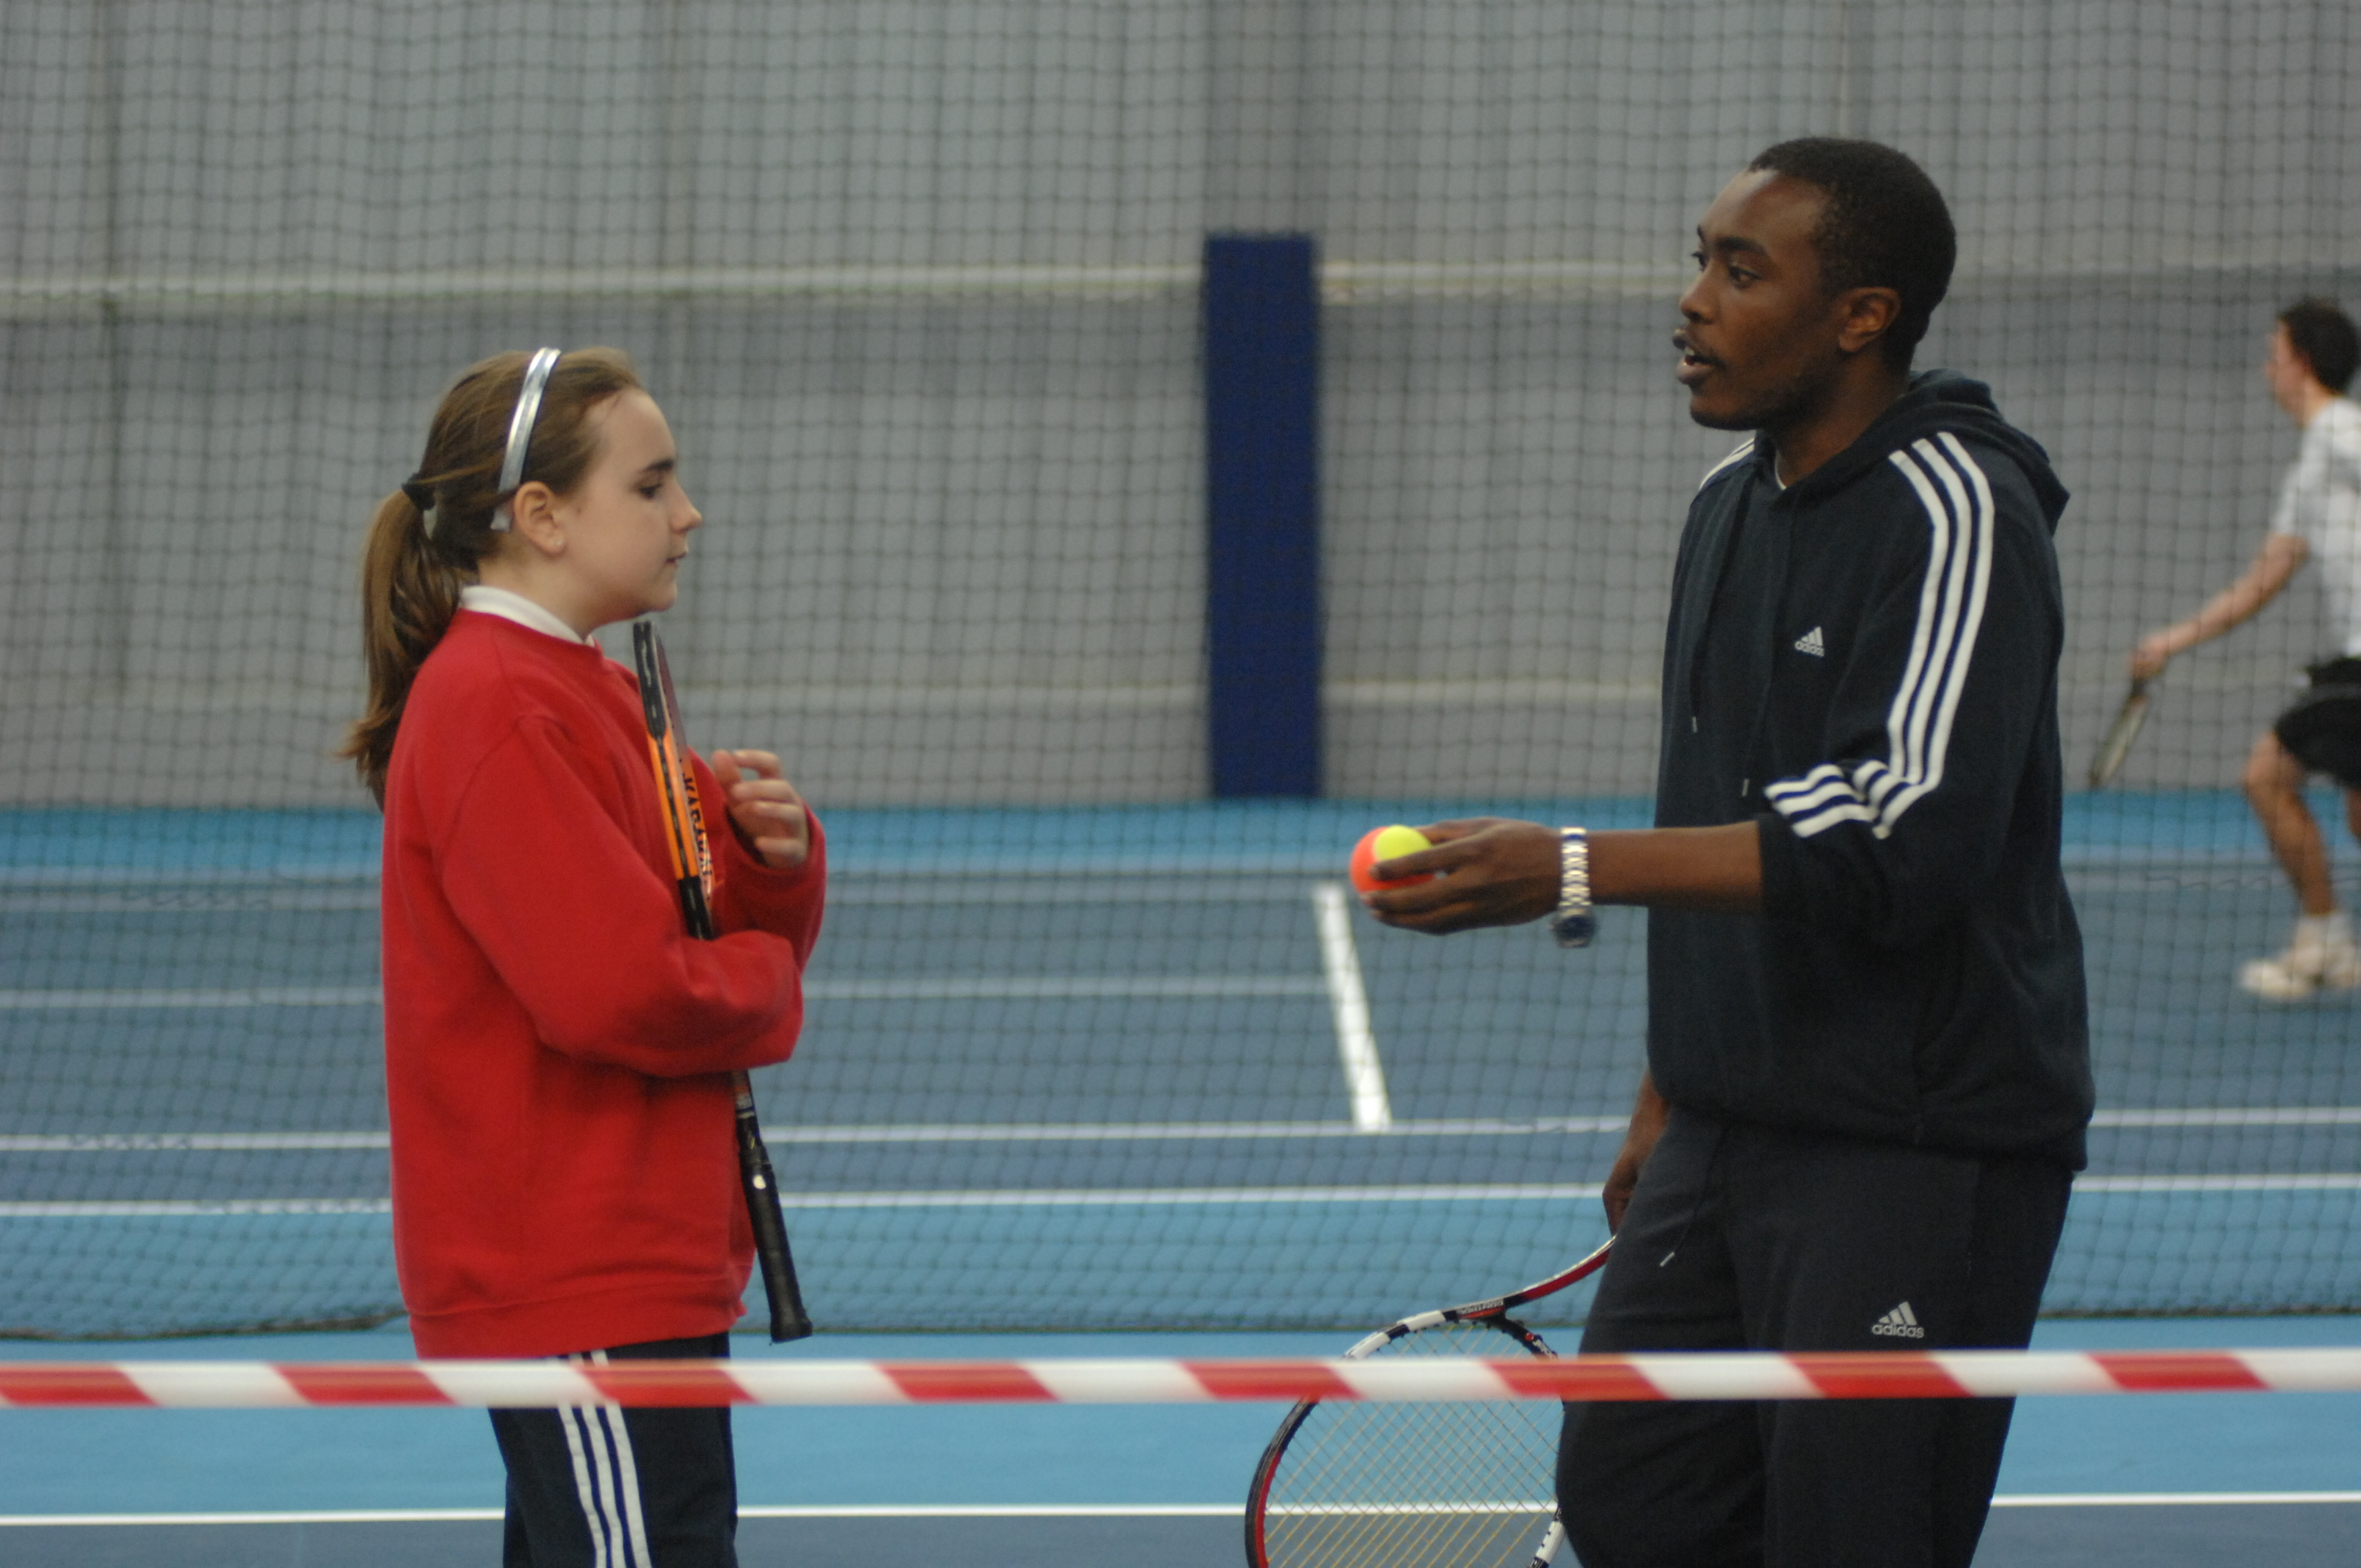 male instructor talking to girl with tennis racket